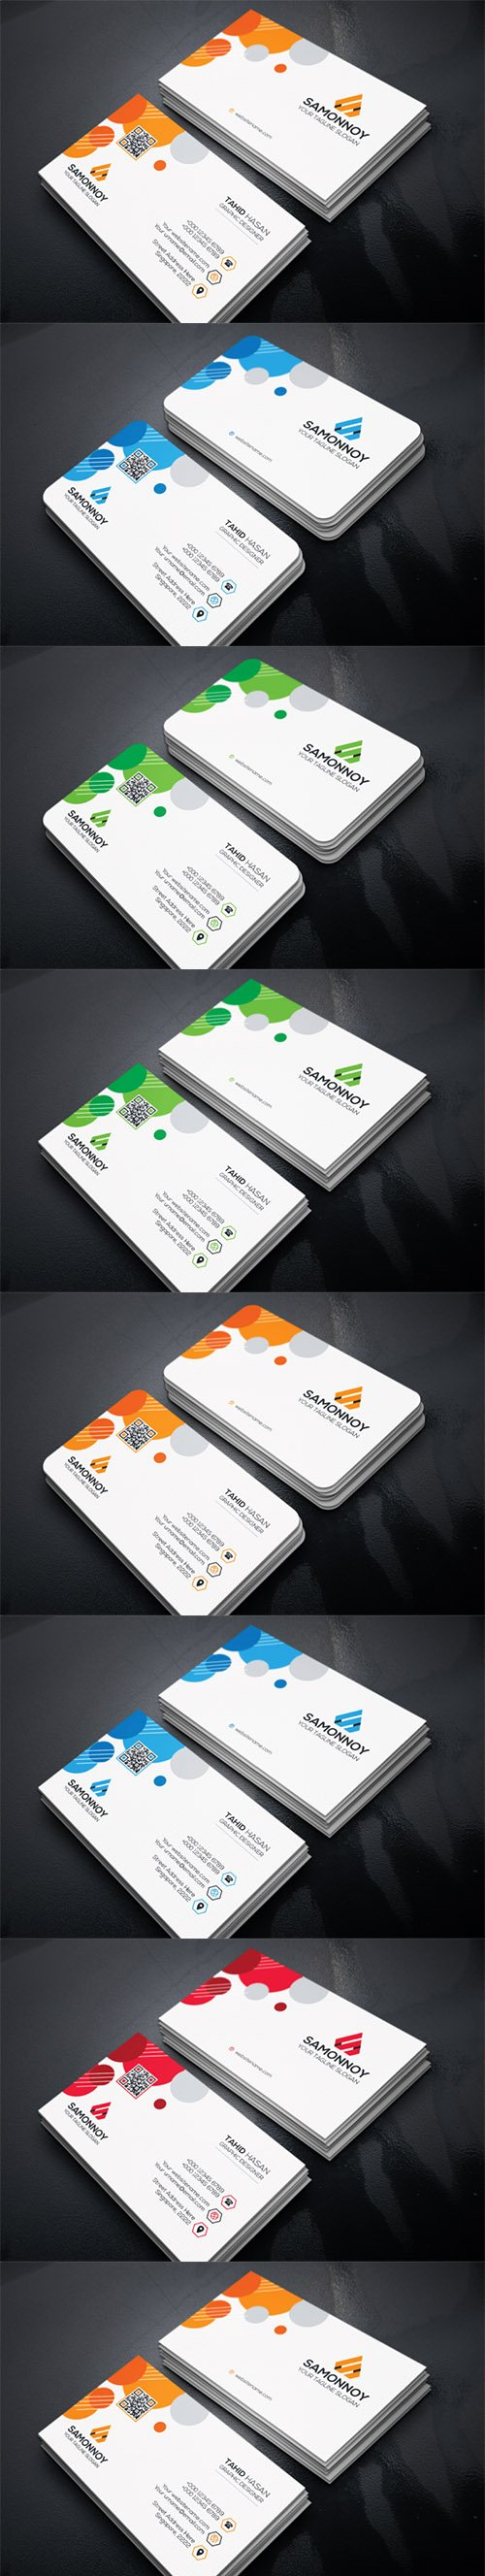 Business Card v.2